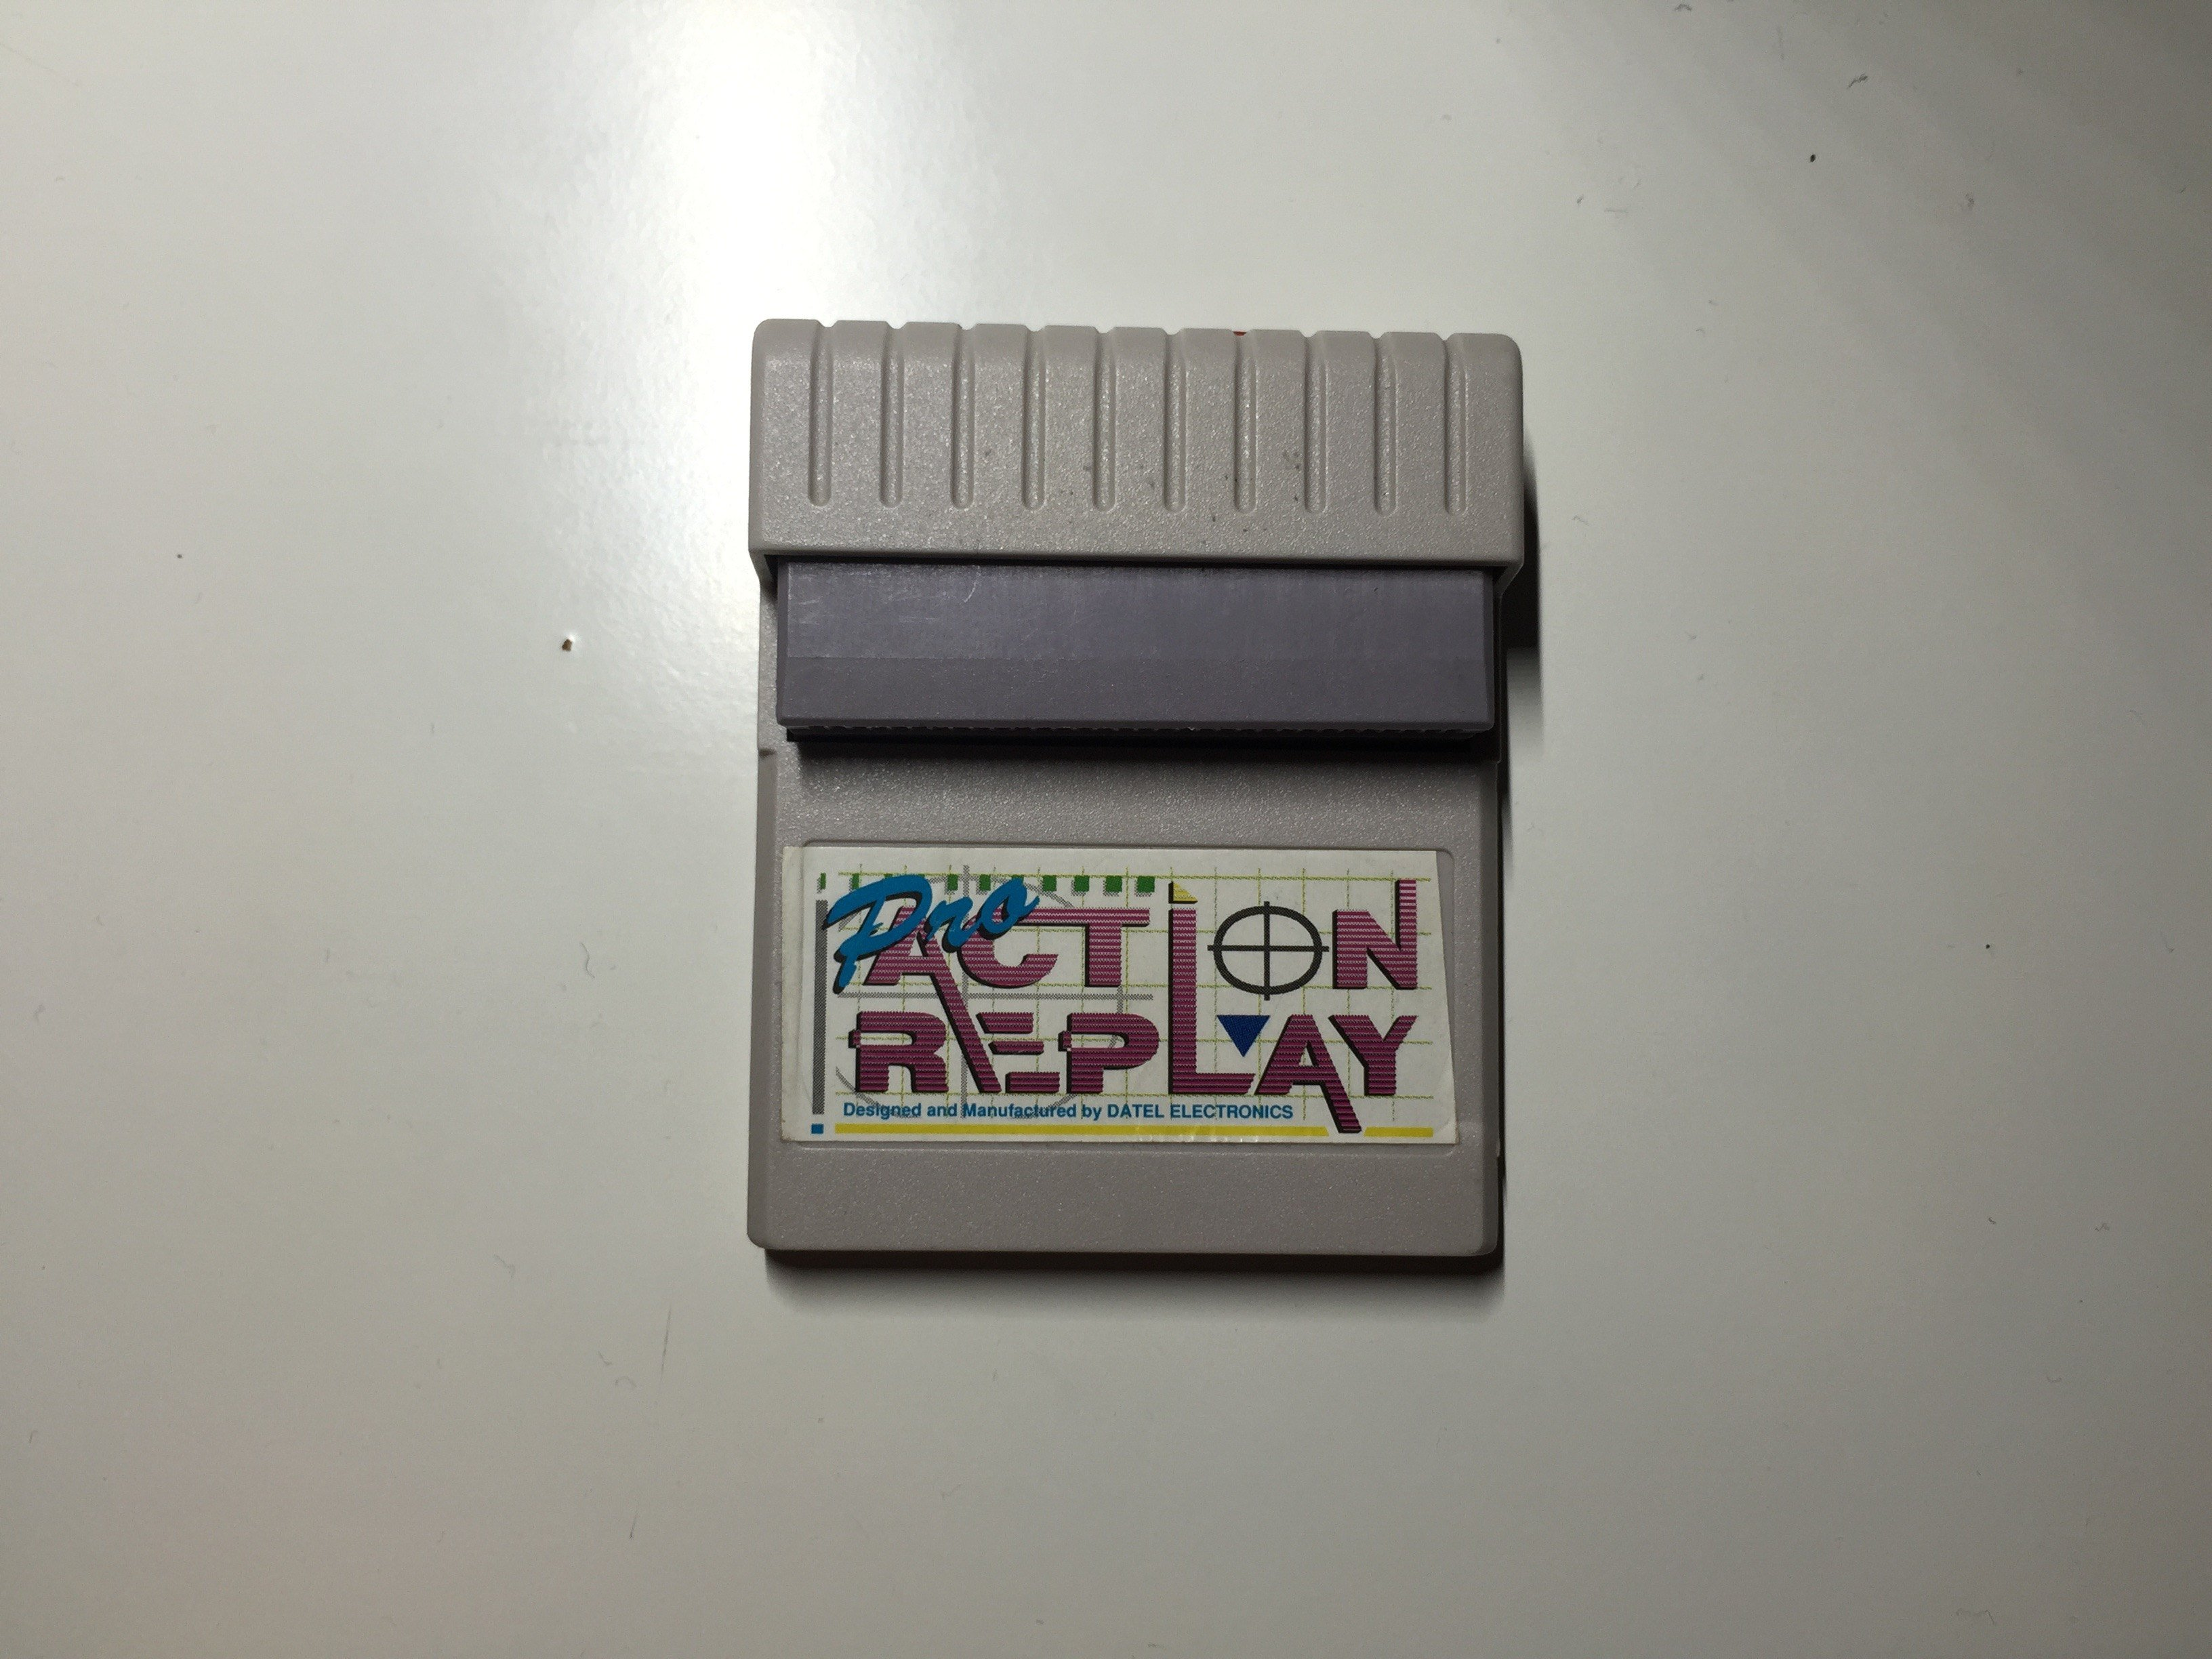 Game boy color game genie codes - Help Pro Action Replay For Gameboy Gbatemp Net The Independent Video Game Community